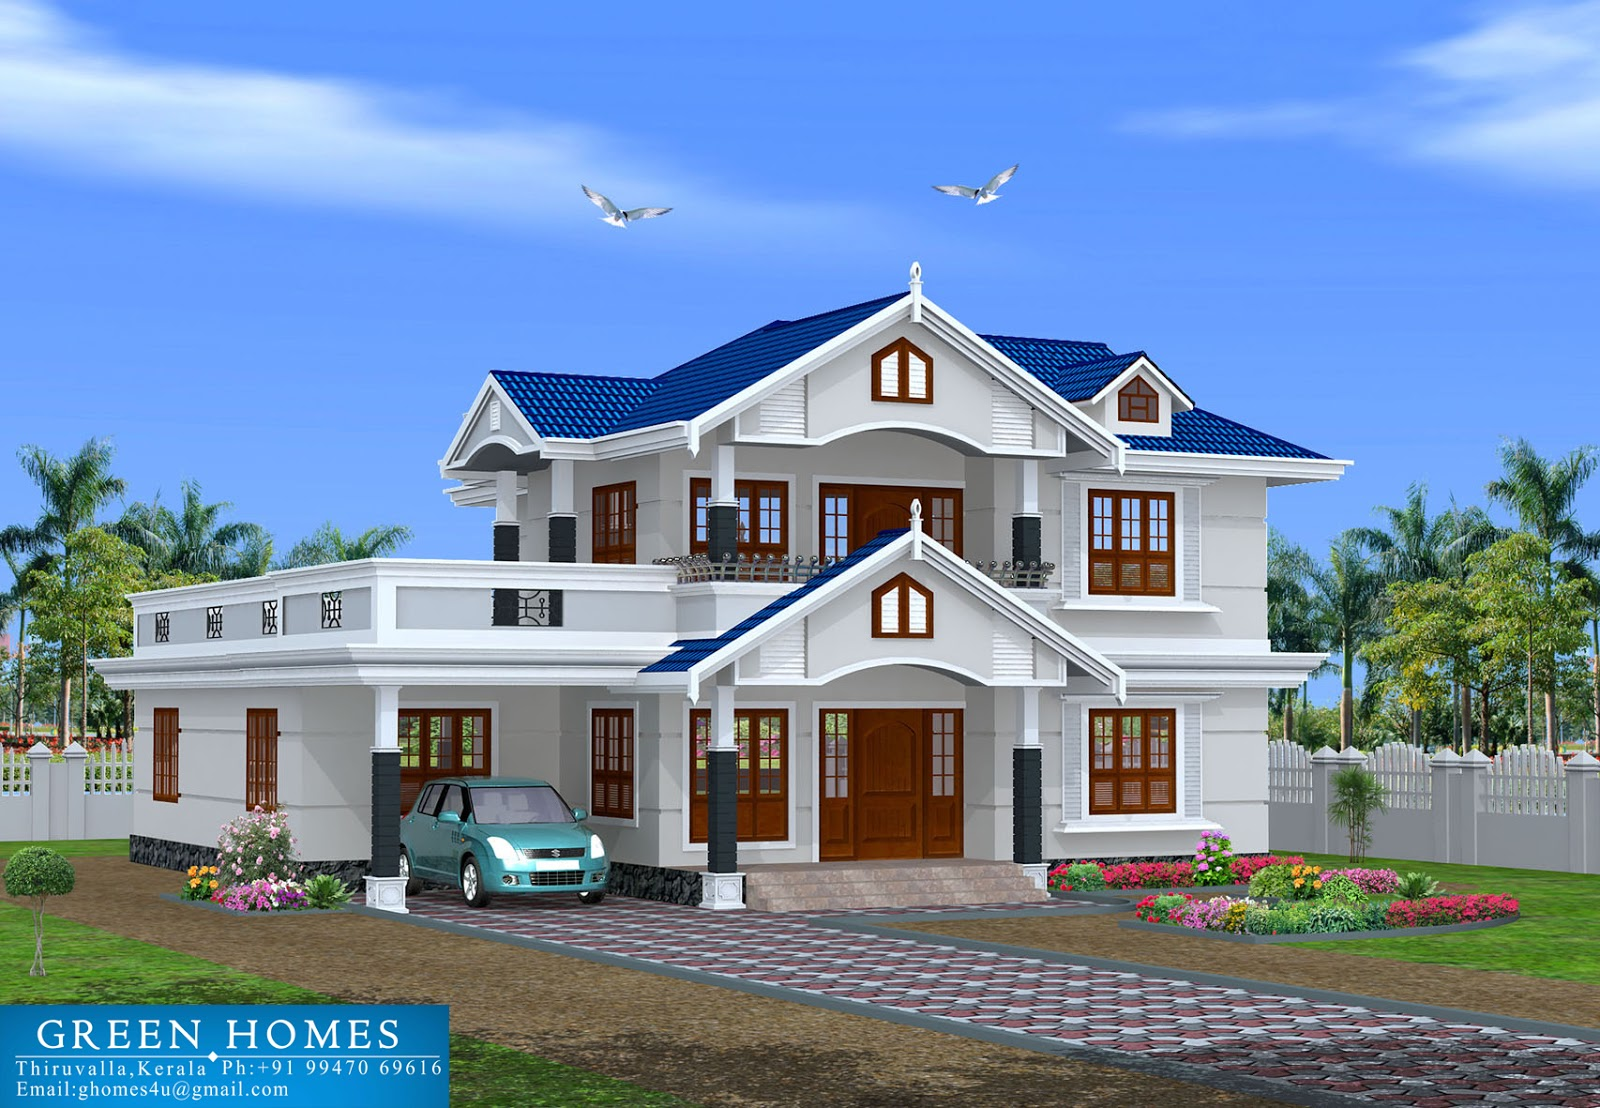 3 Bedroom House Plans One Story Green Homes November 2012